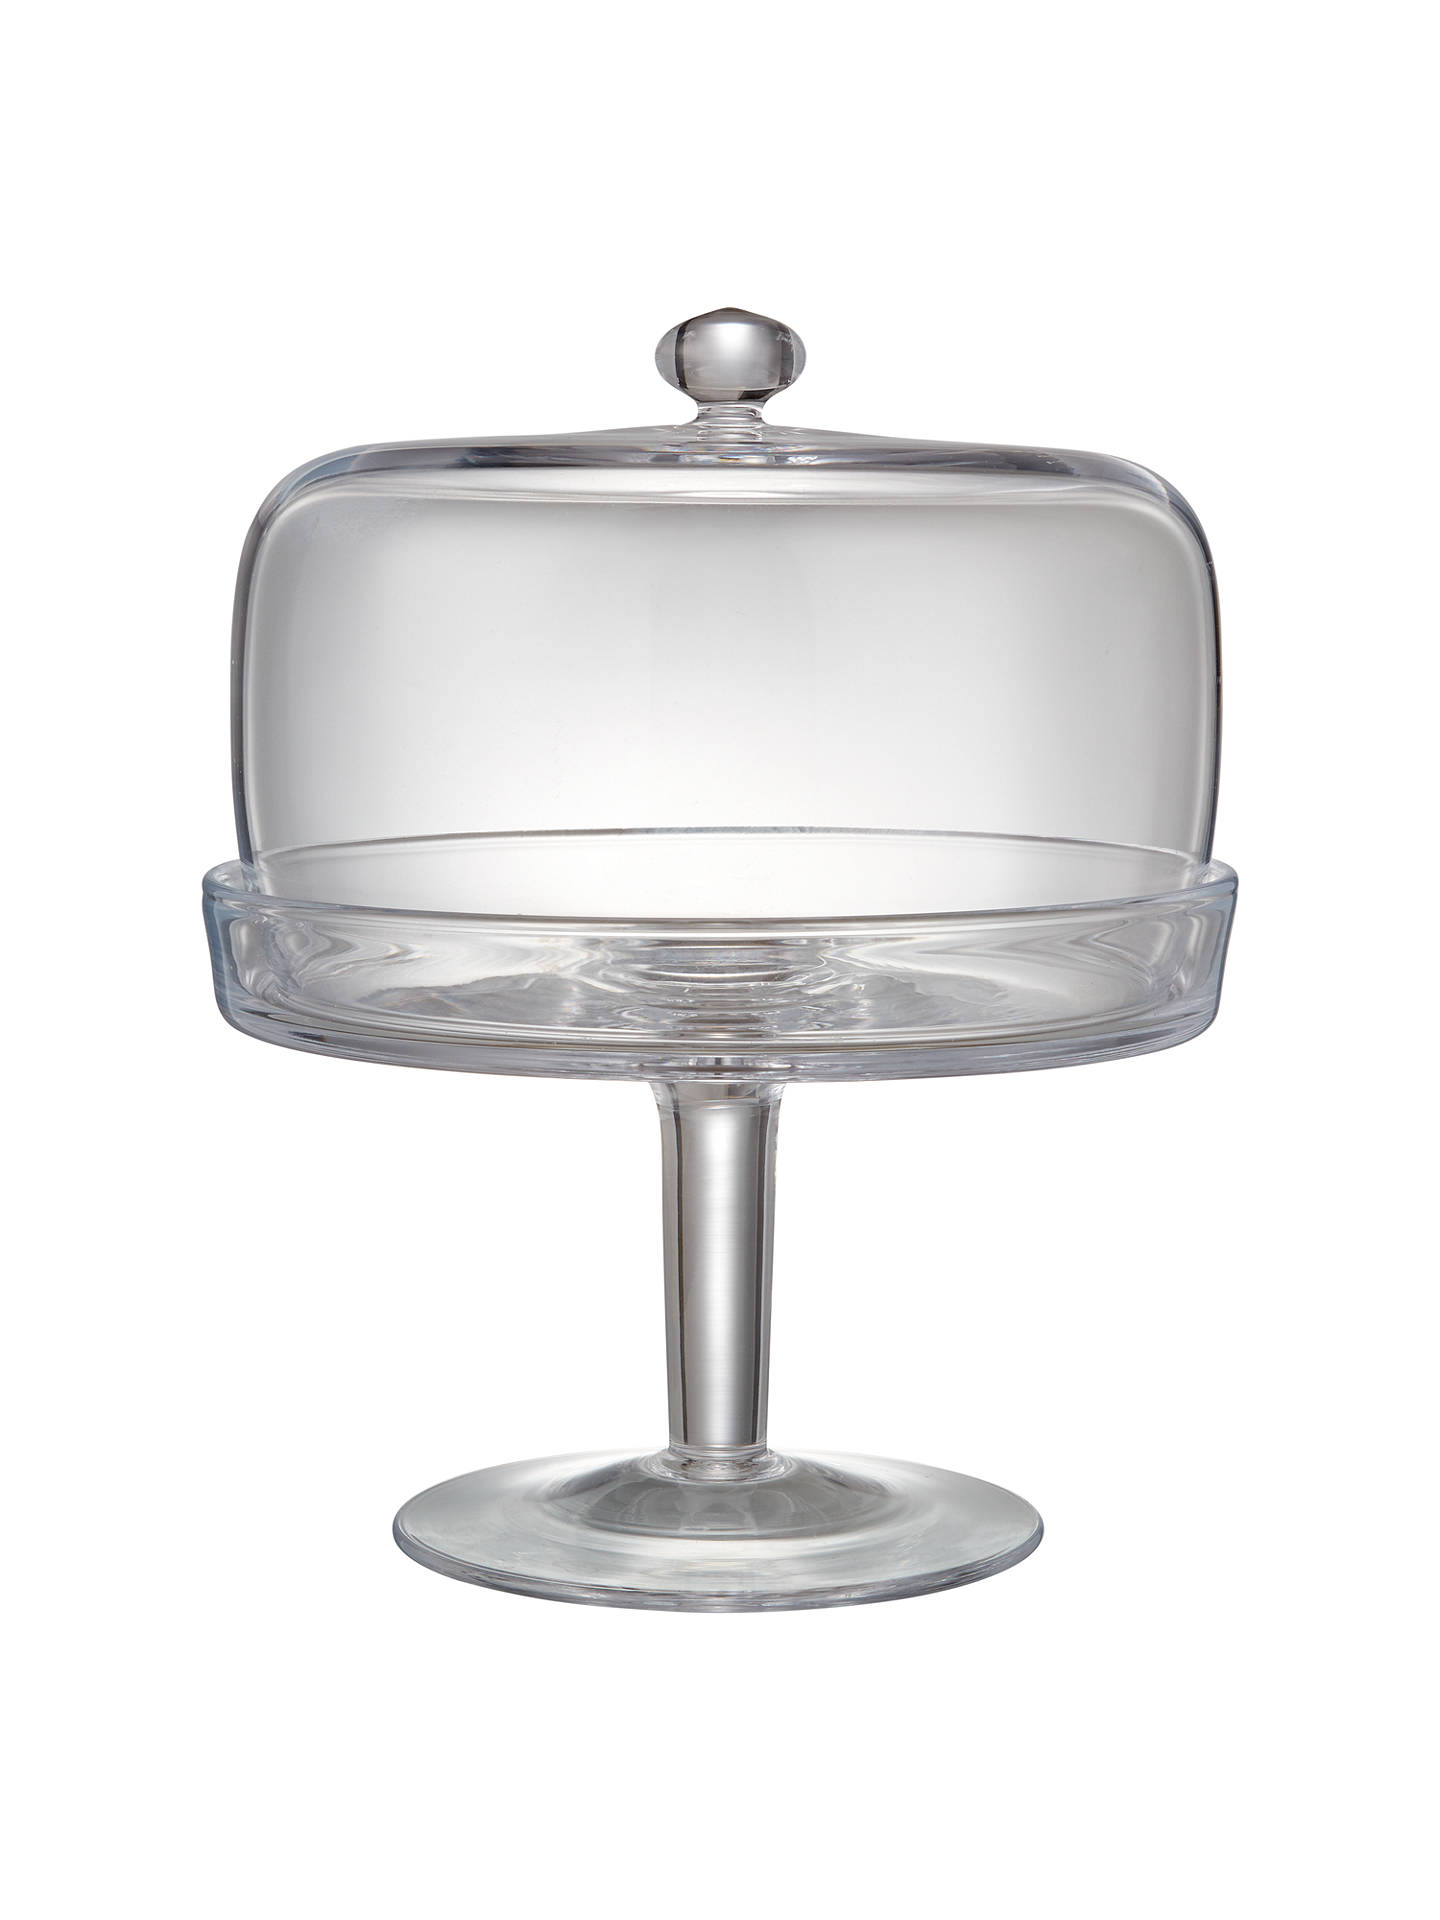 john lewis partners serve glass cake stand and dome 20. Black Bedroom Furniture Sets. Home Design Ideas